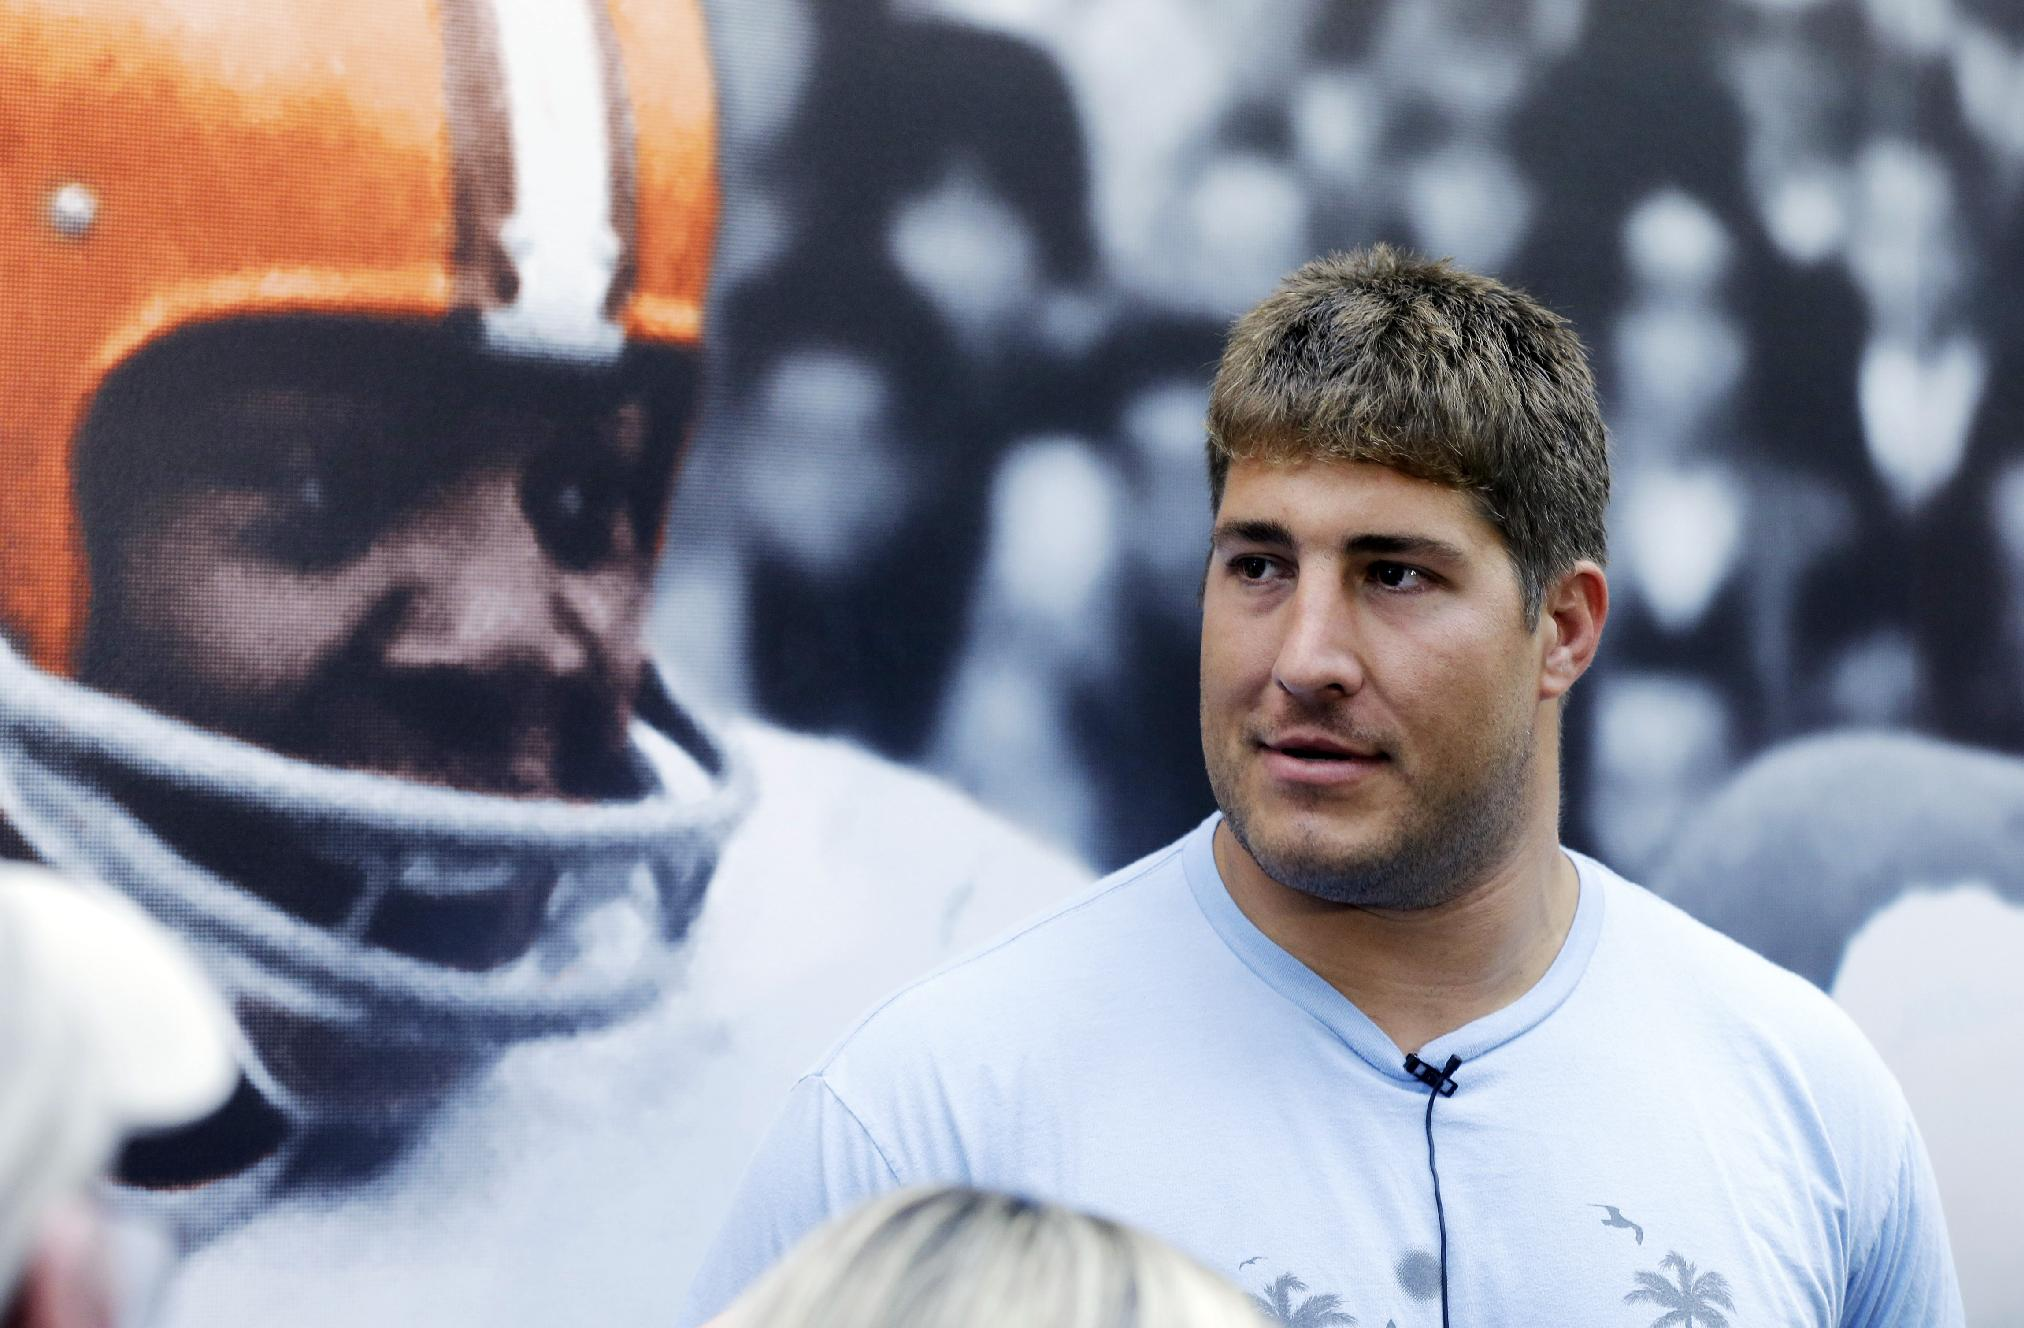 Cleveland Browns center Alex Mack talks with the media in front of a large mural of Hall of Fame running back Jim Brown at the NFL football team's facility in Berea, Ohio, Monday, April 14, 2014. The Pro Bowl center was one step out the door from leaving the Browns last week, but following a muddled free agency courtship, he's staying in Cleveland after the Browns matched the Jacksonville Jaguars contract offer